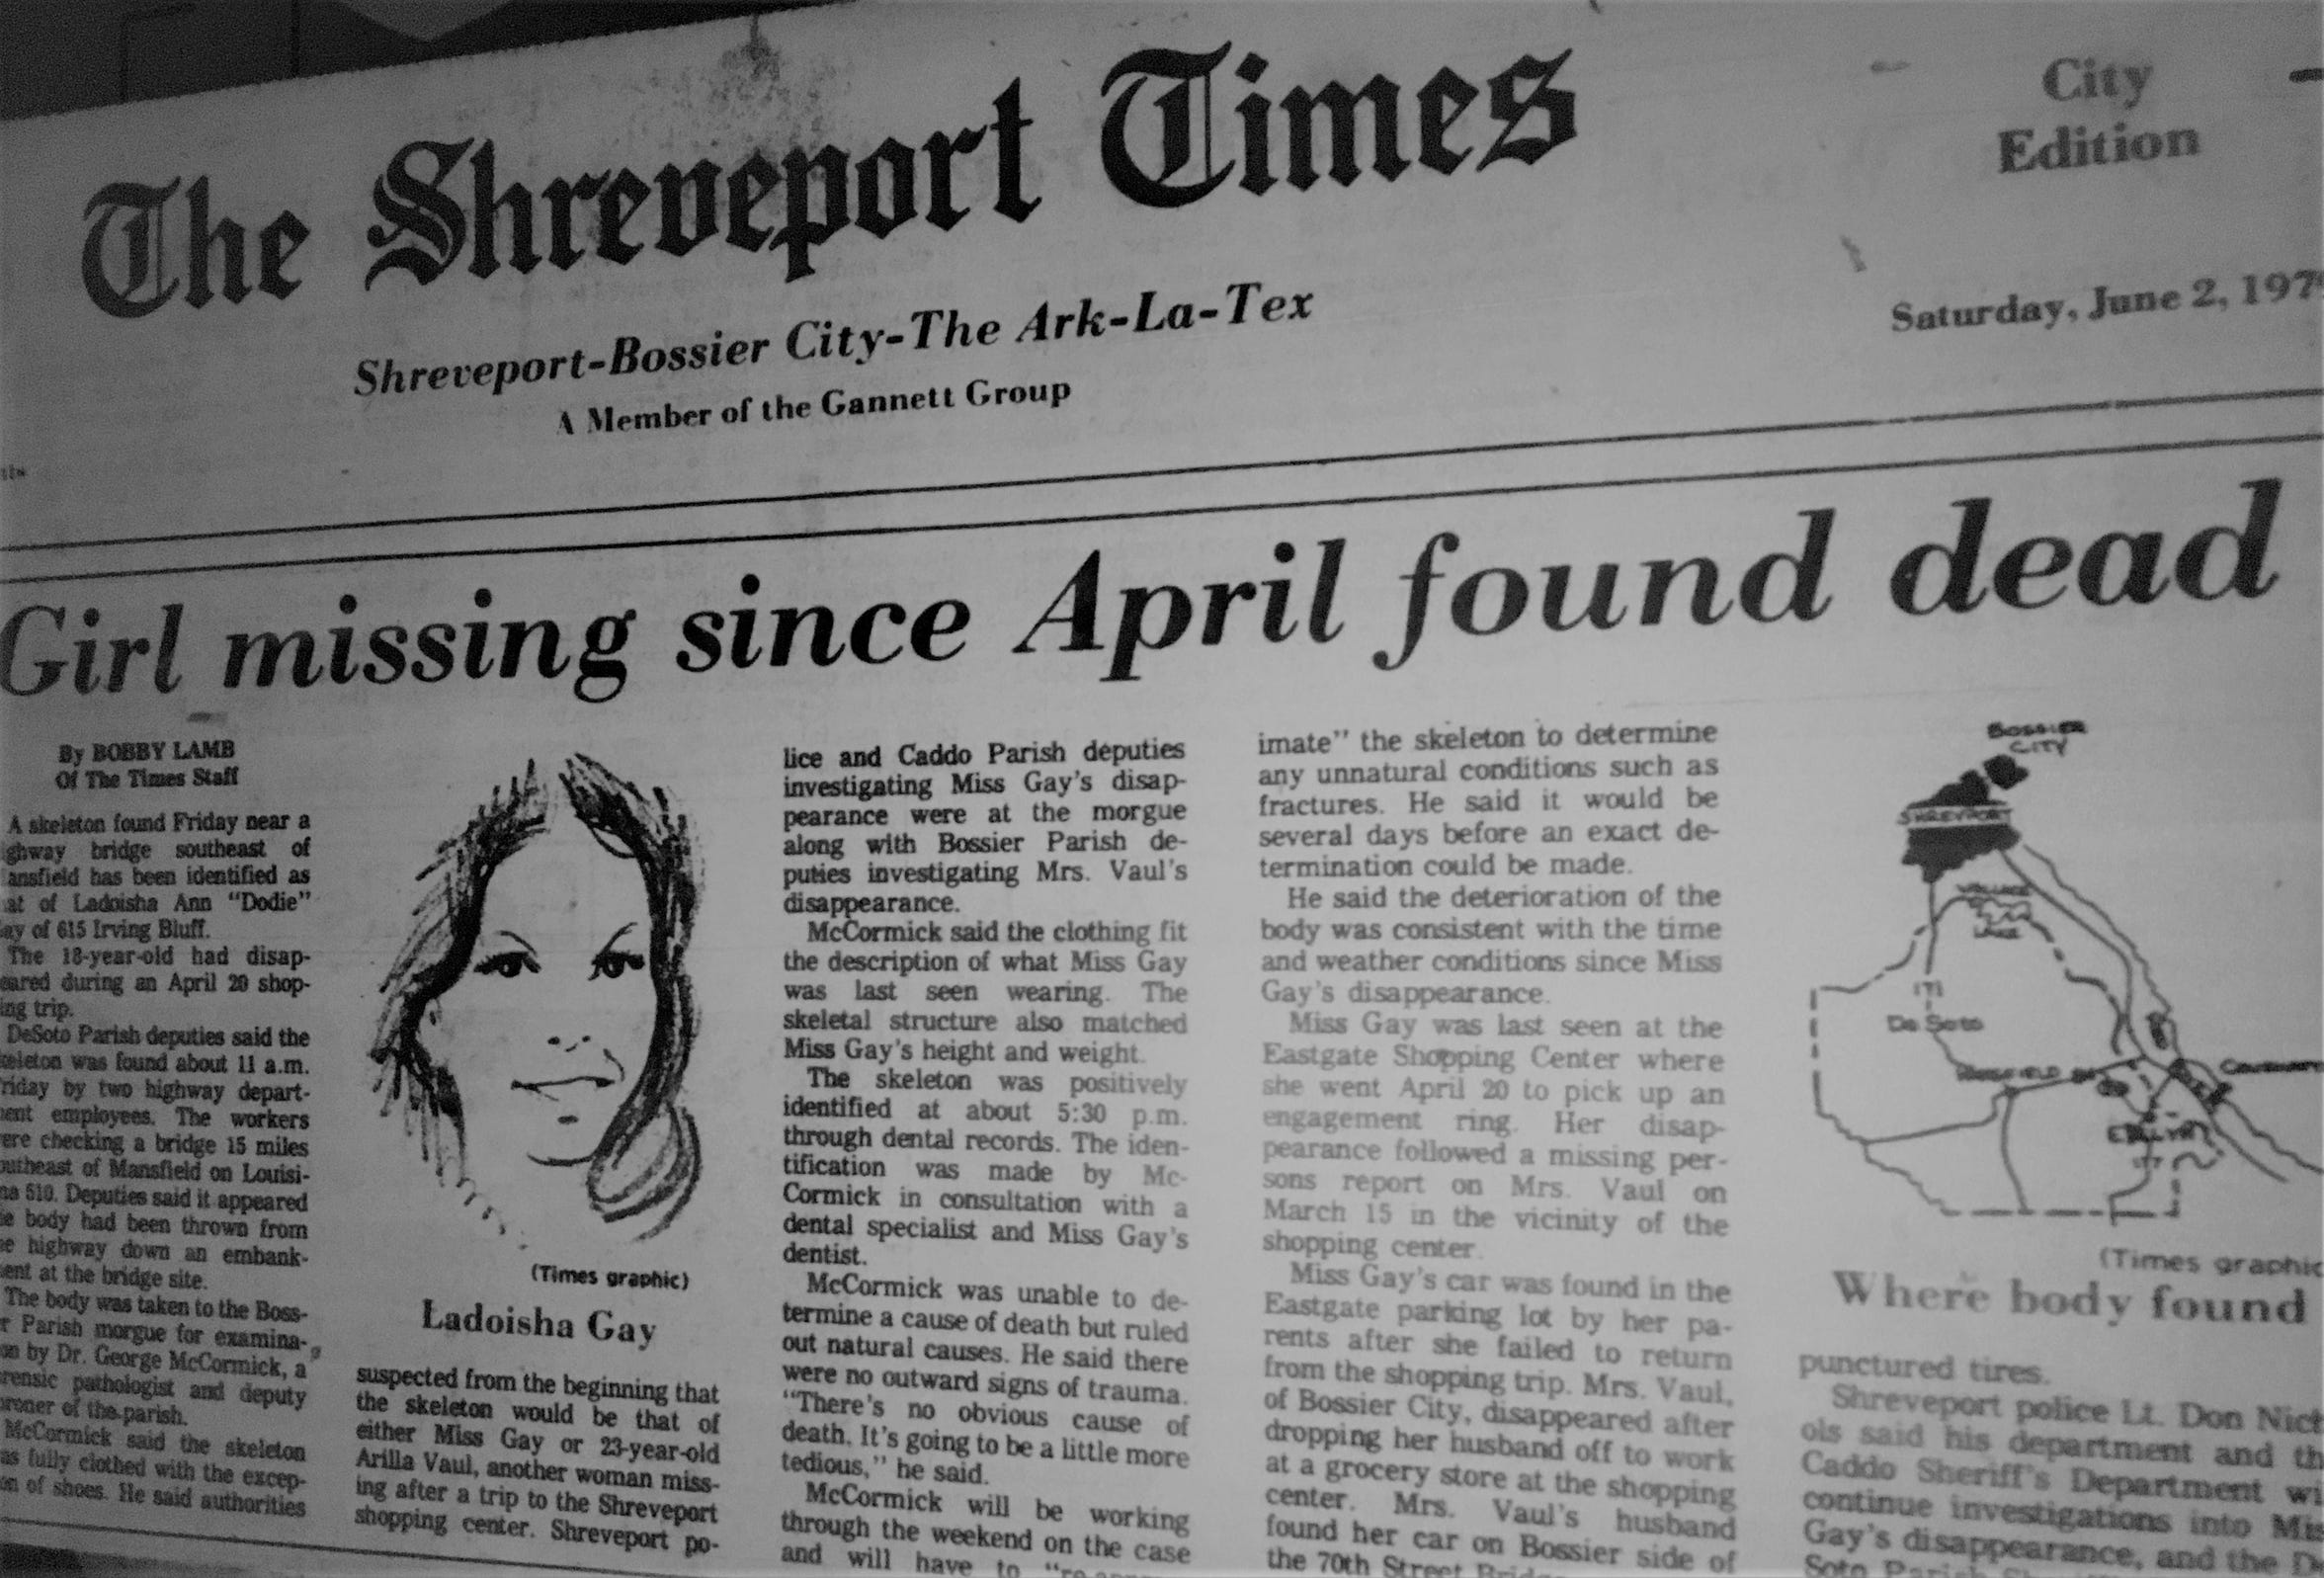 A Times article reports the discovery of Dodie Gay's body in June 1979.